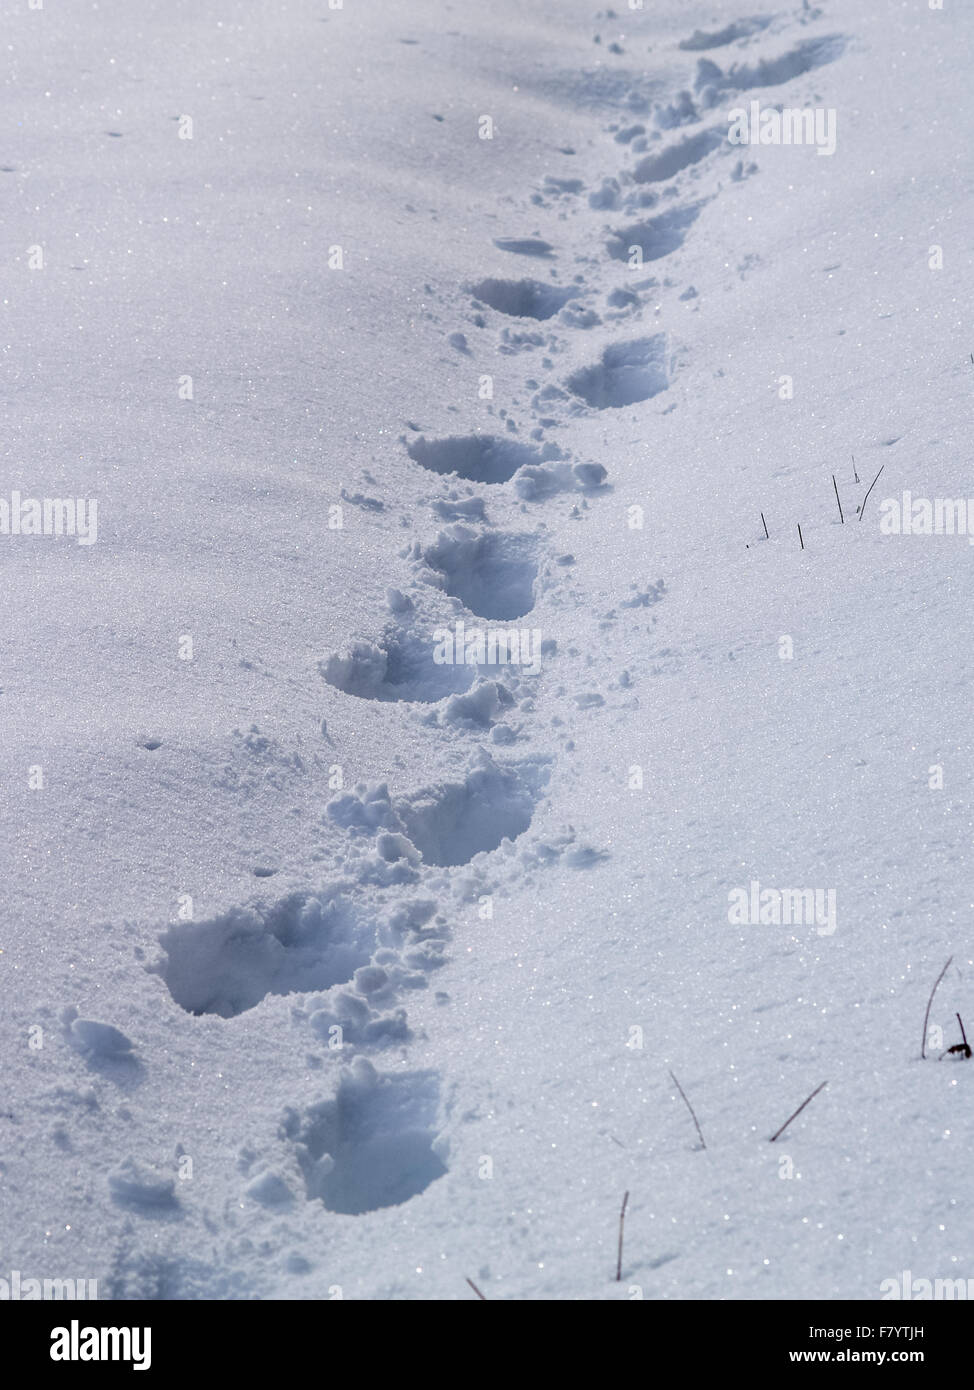 Footprints in deep white snow, winter, UK - Stock Image